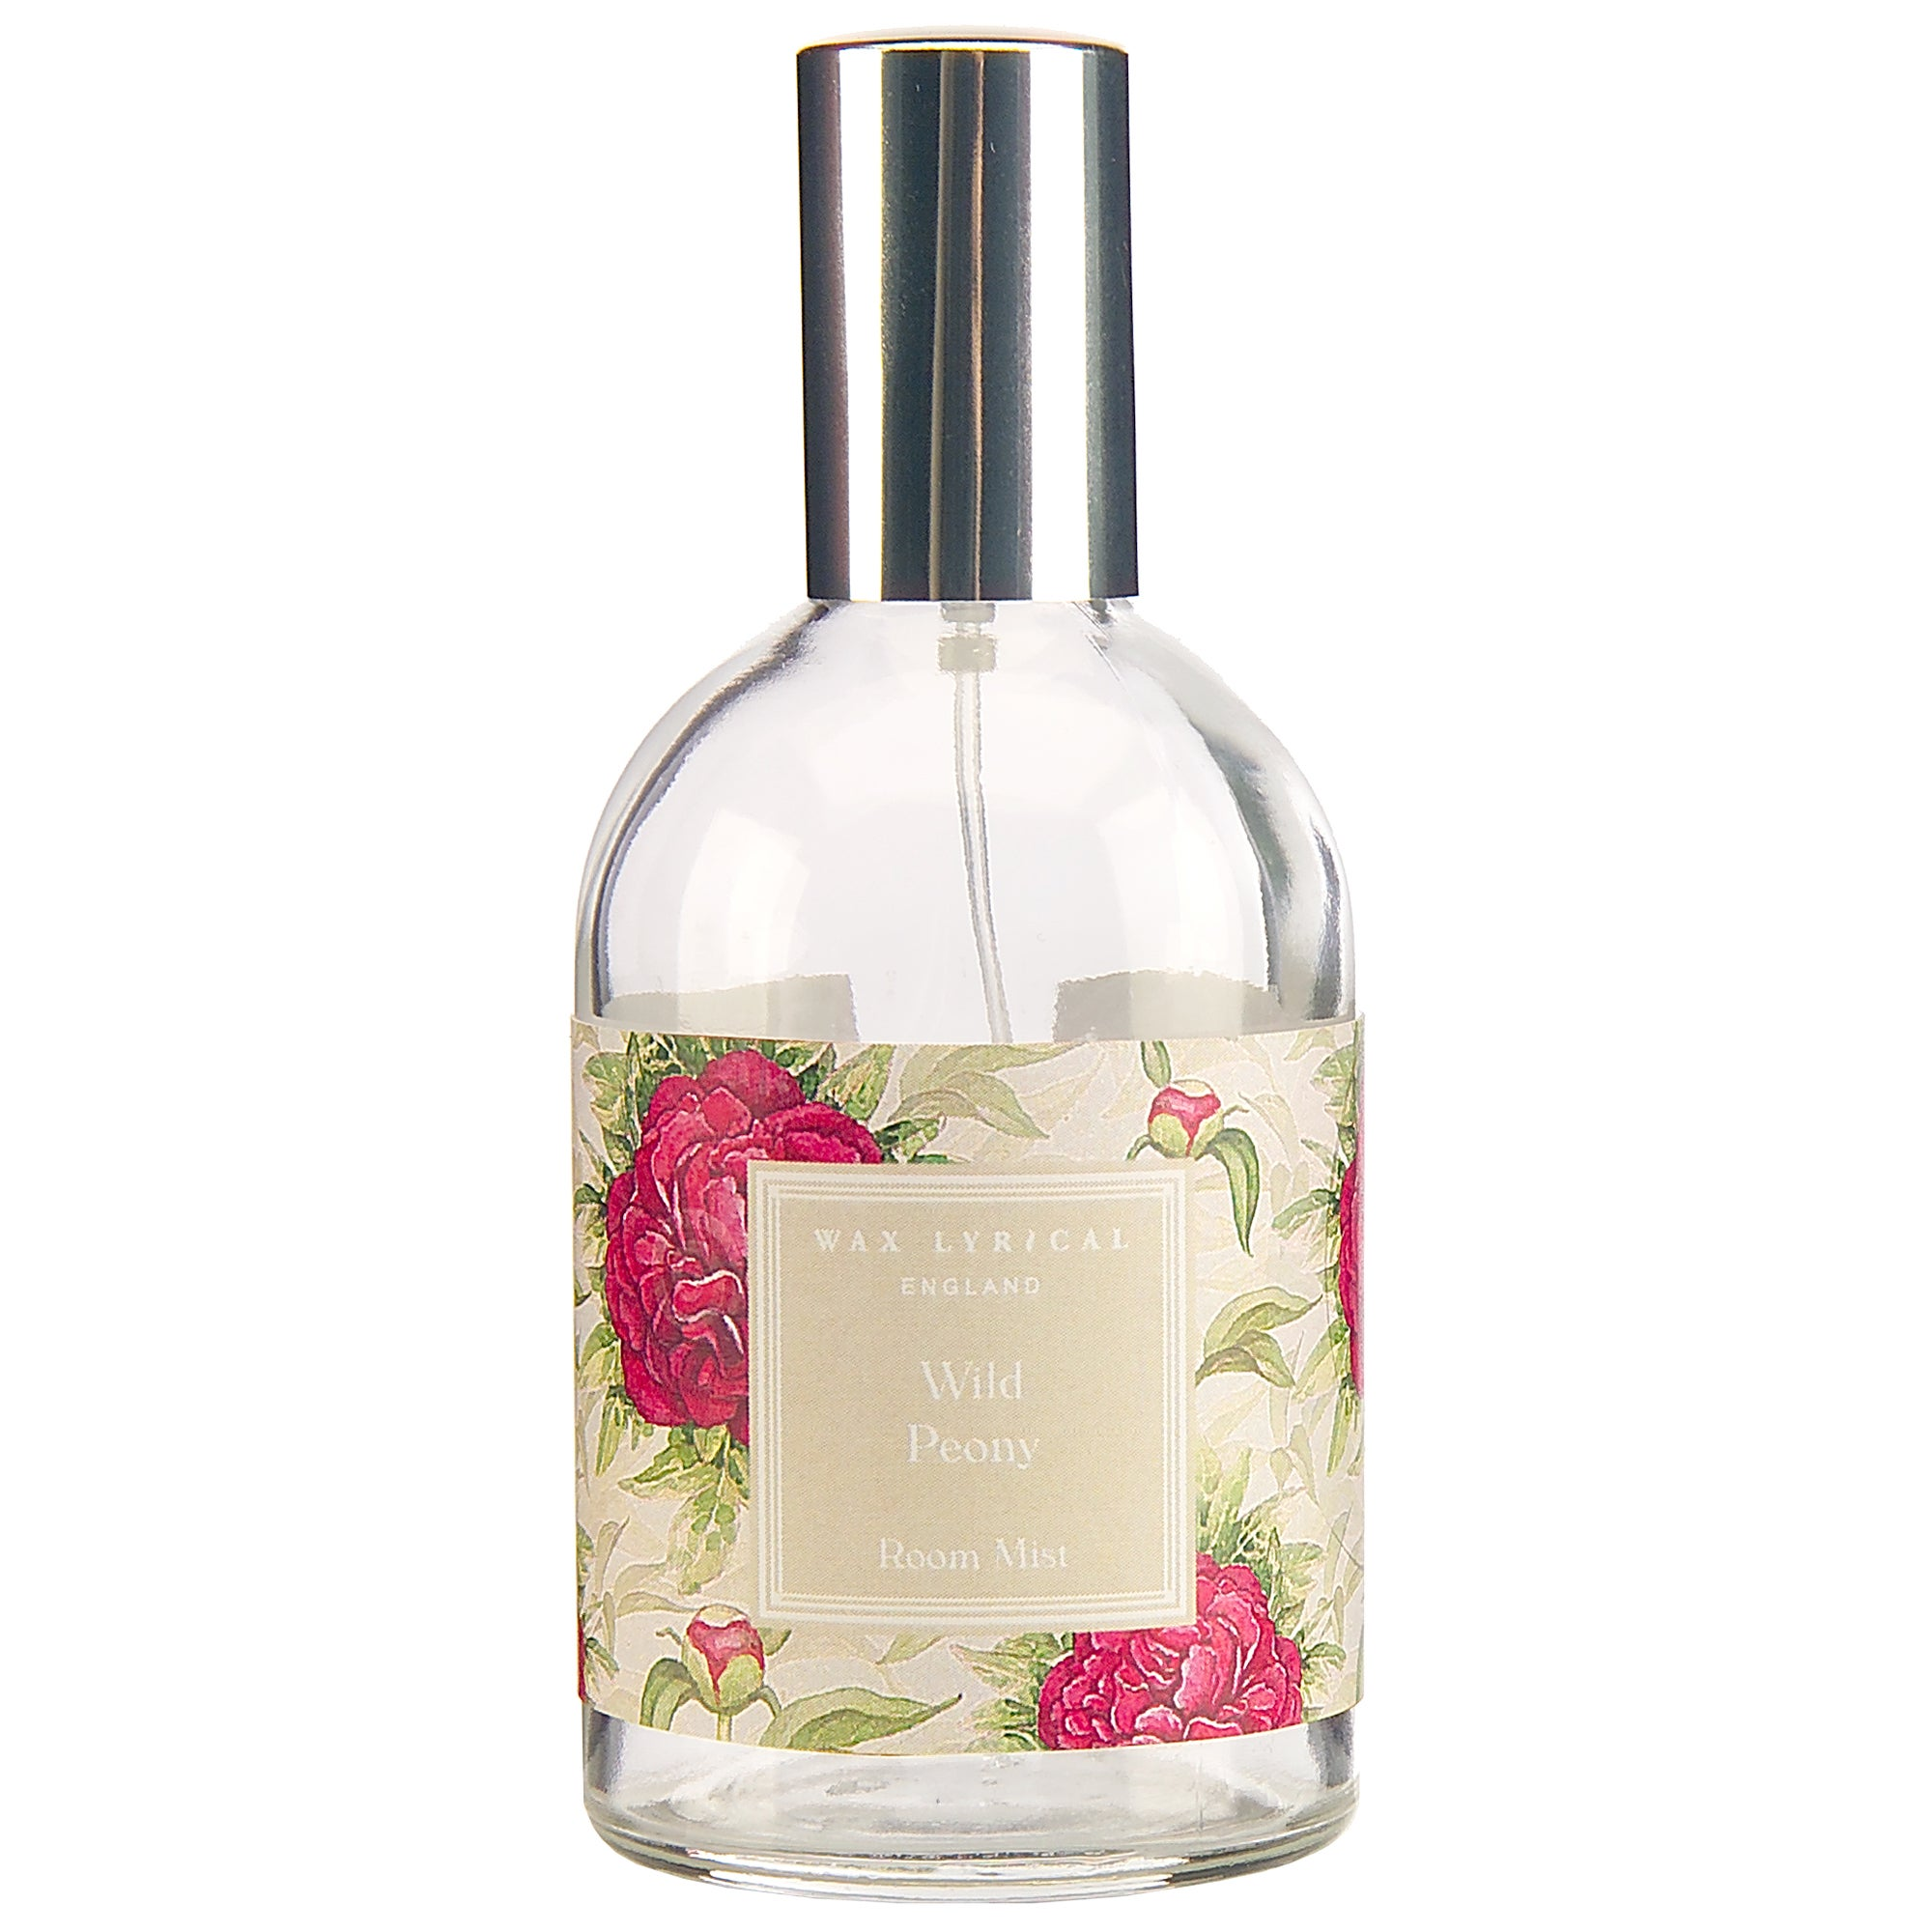 Wax Lyrical Wild Peony 100ml Room Mist